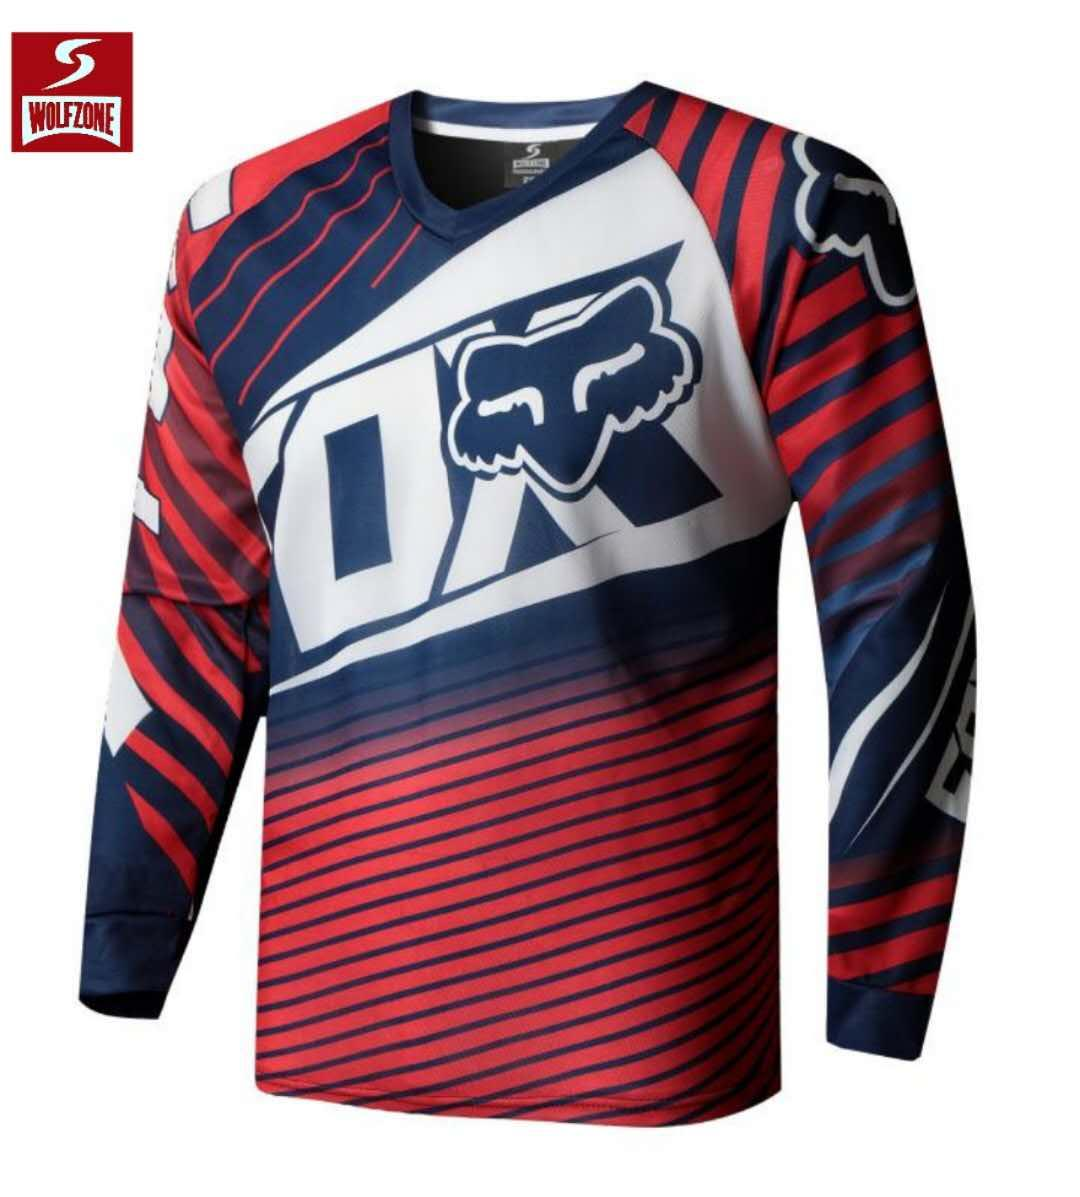 835d26051 Wolf Zone Spandex Fox Longsleeve Men s Sportswear Quick DryFortress Cycling  Mountain Bike Motocross Motorcycle MTB